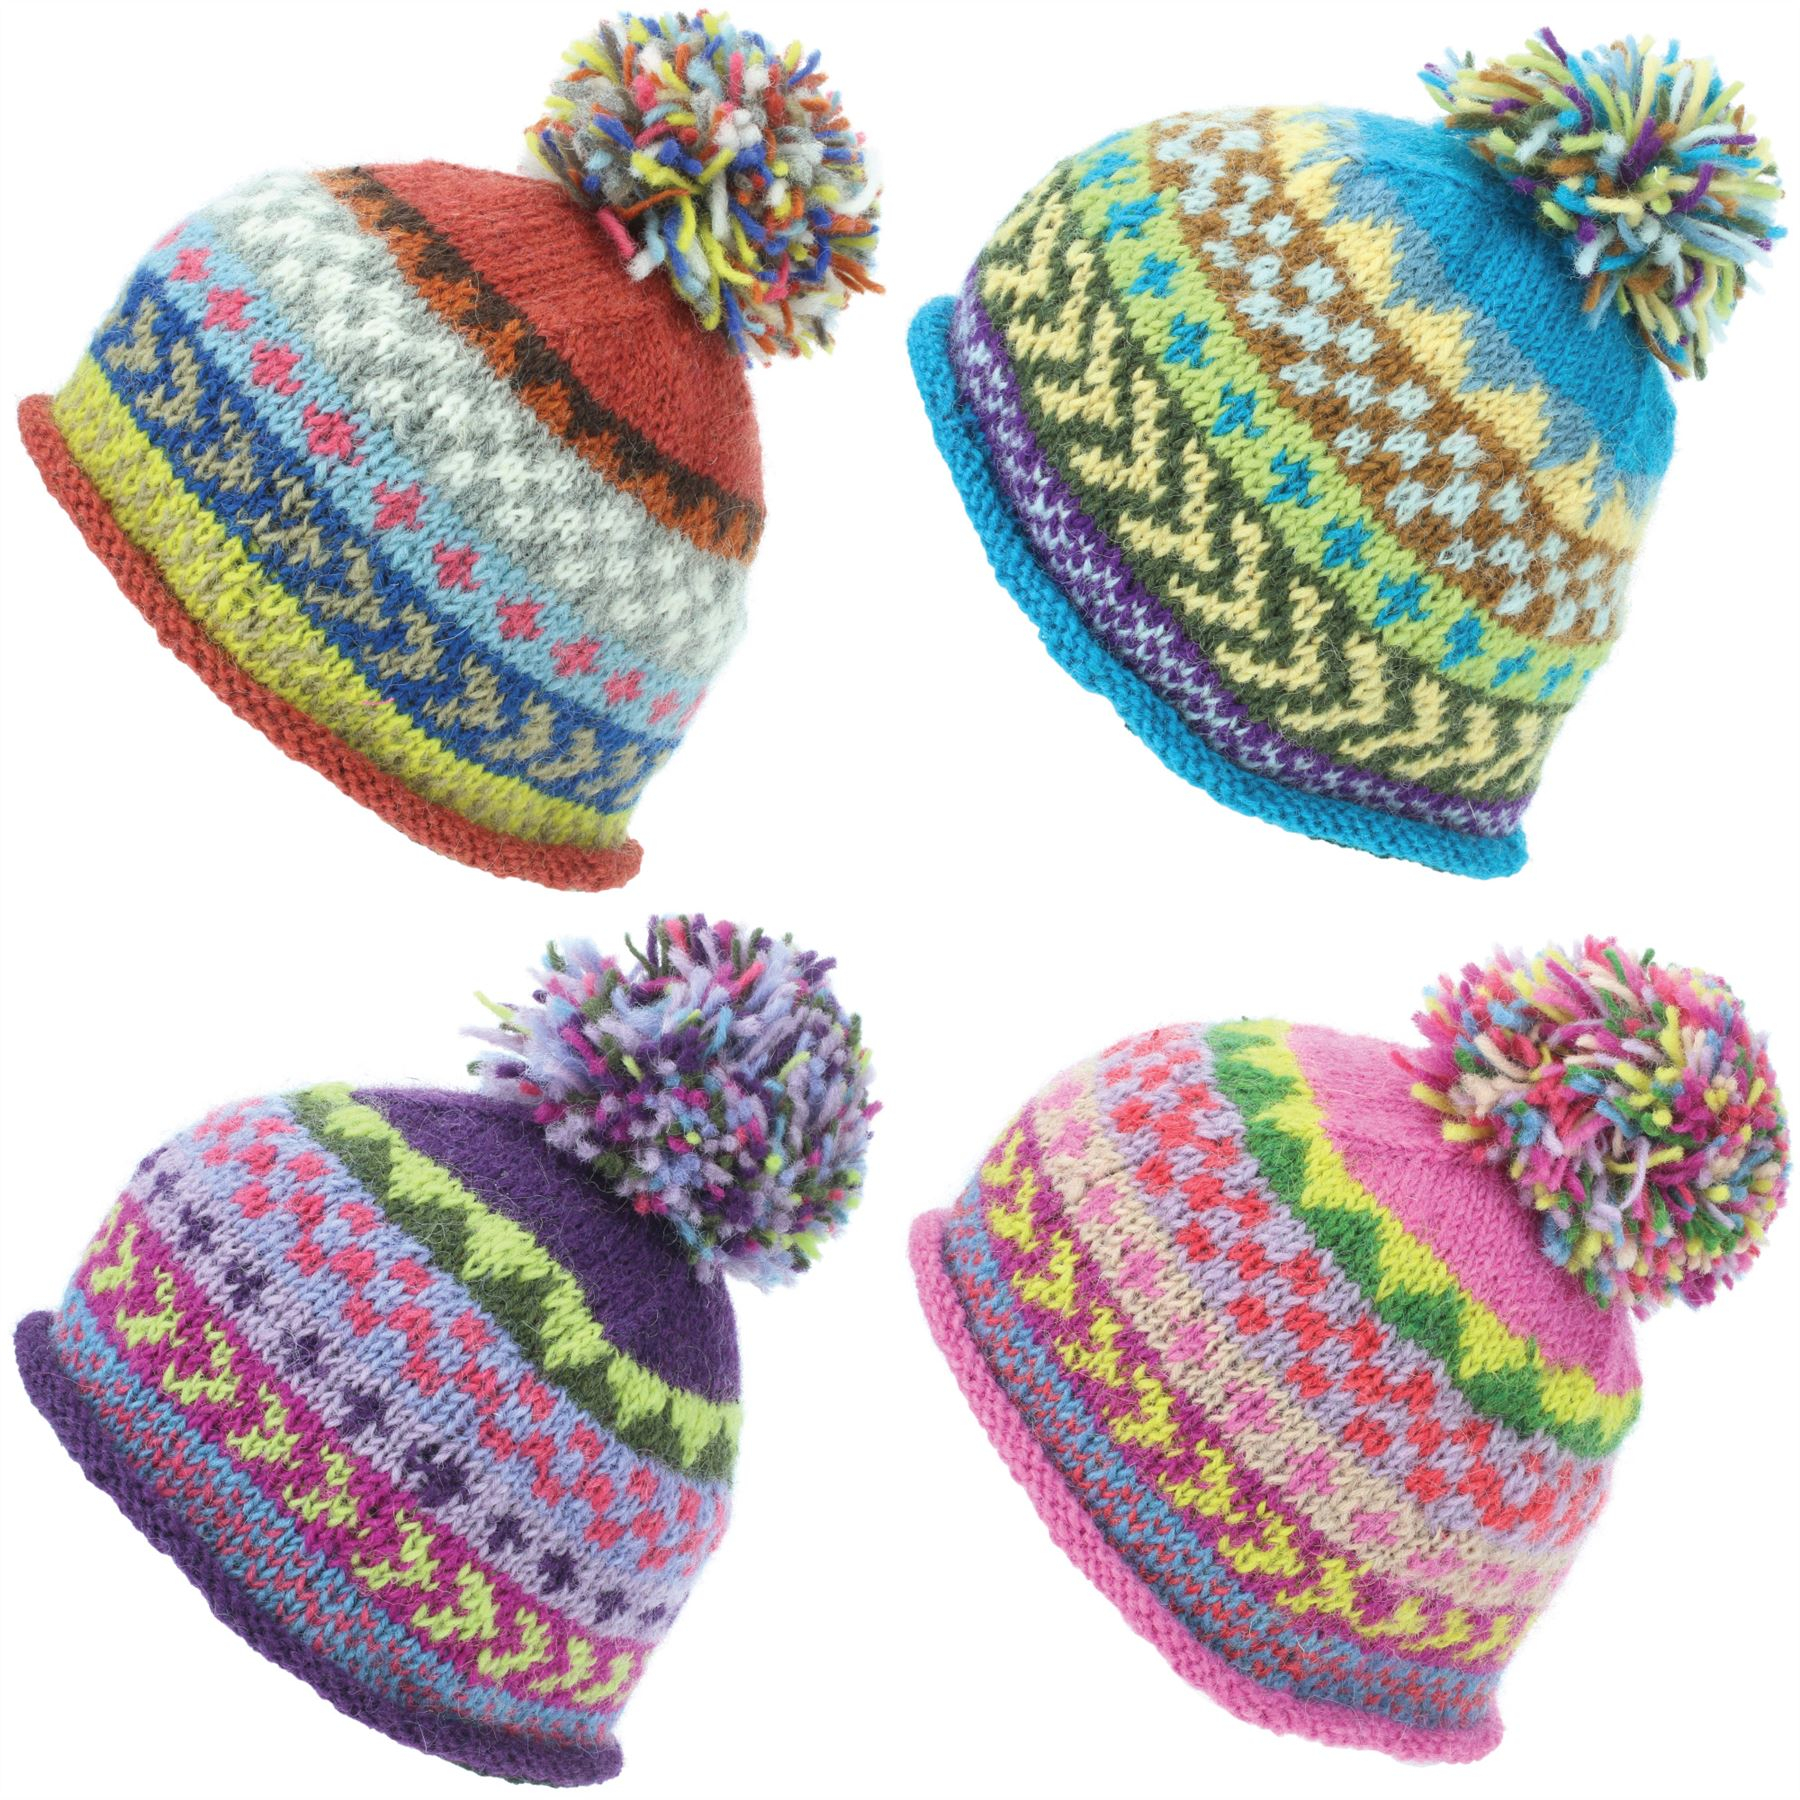 Bobble Hat Knitting Pattern Details About Beanie Hat Wool Cap Bobble Warm Winter Pattern Bright Loudelephant Lined Knit